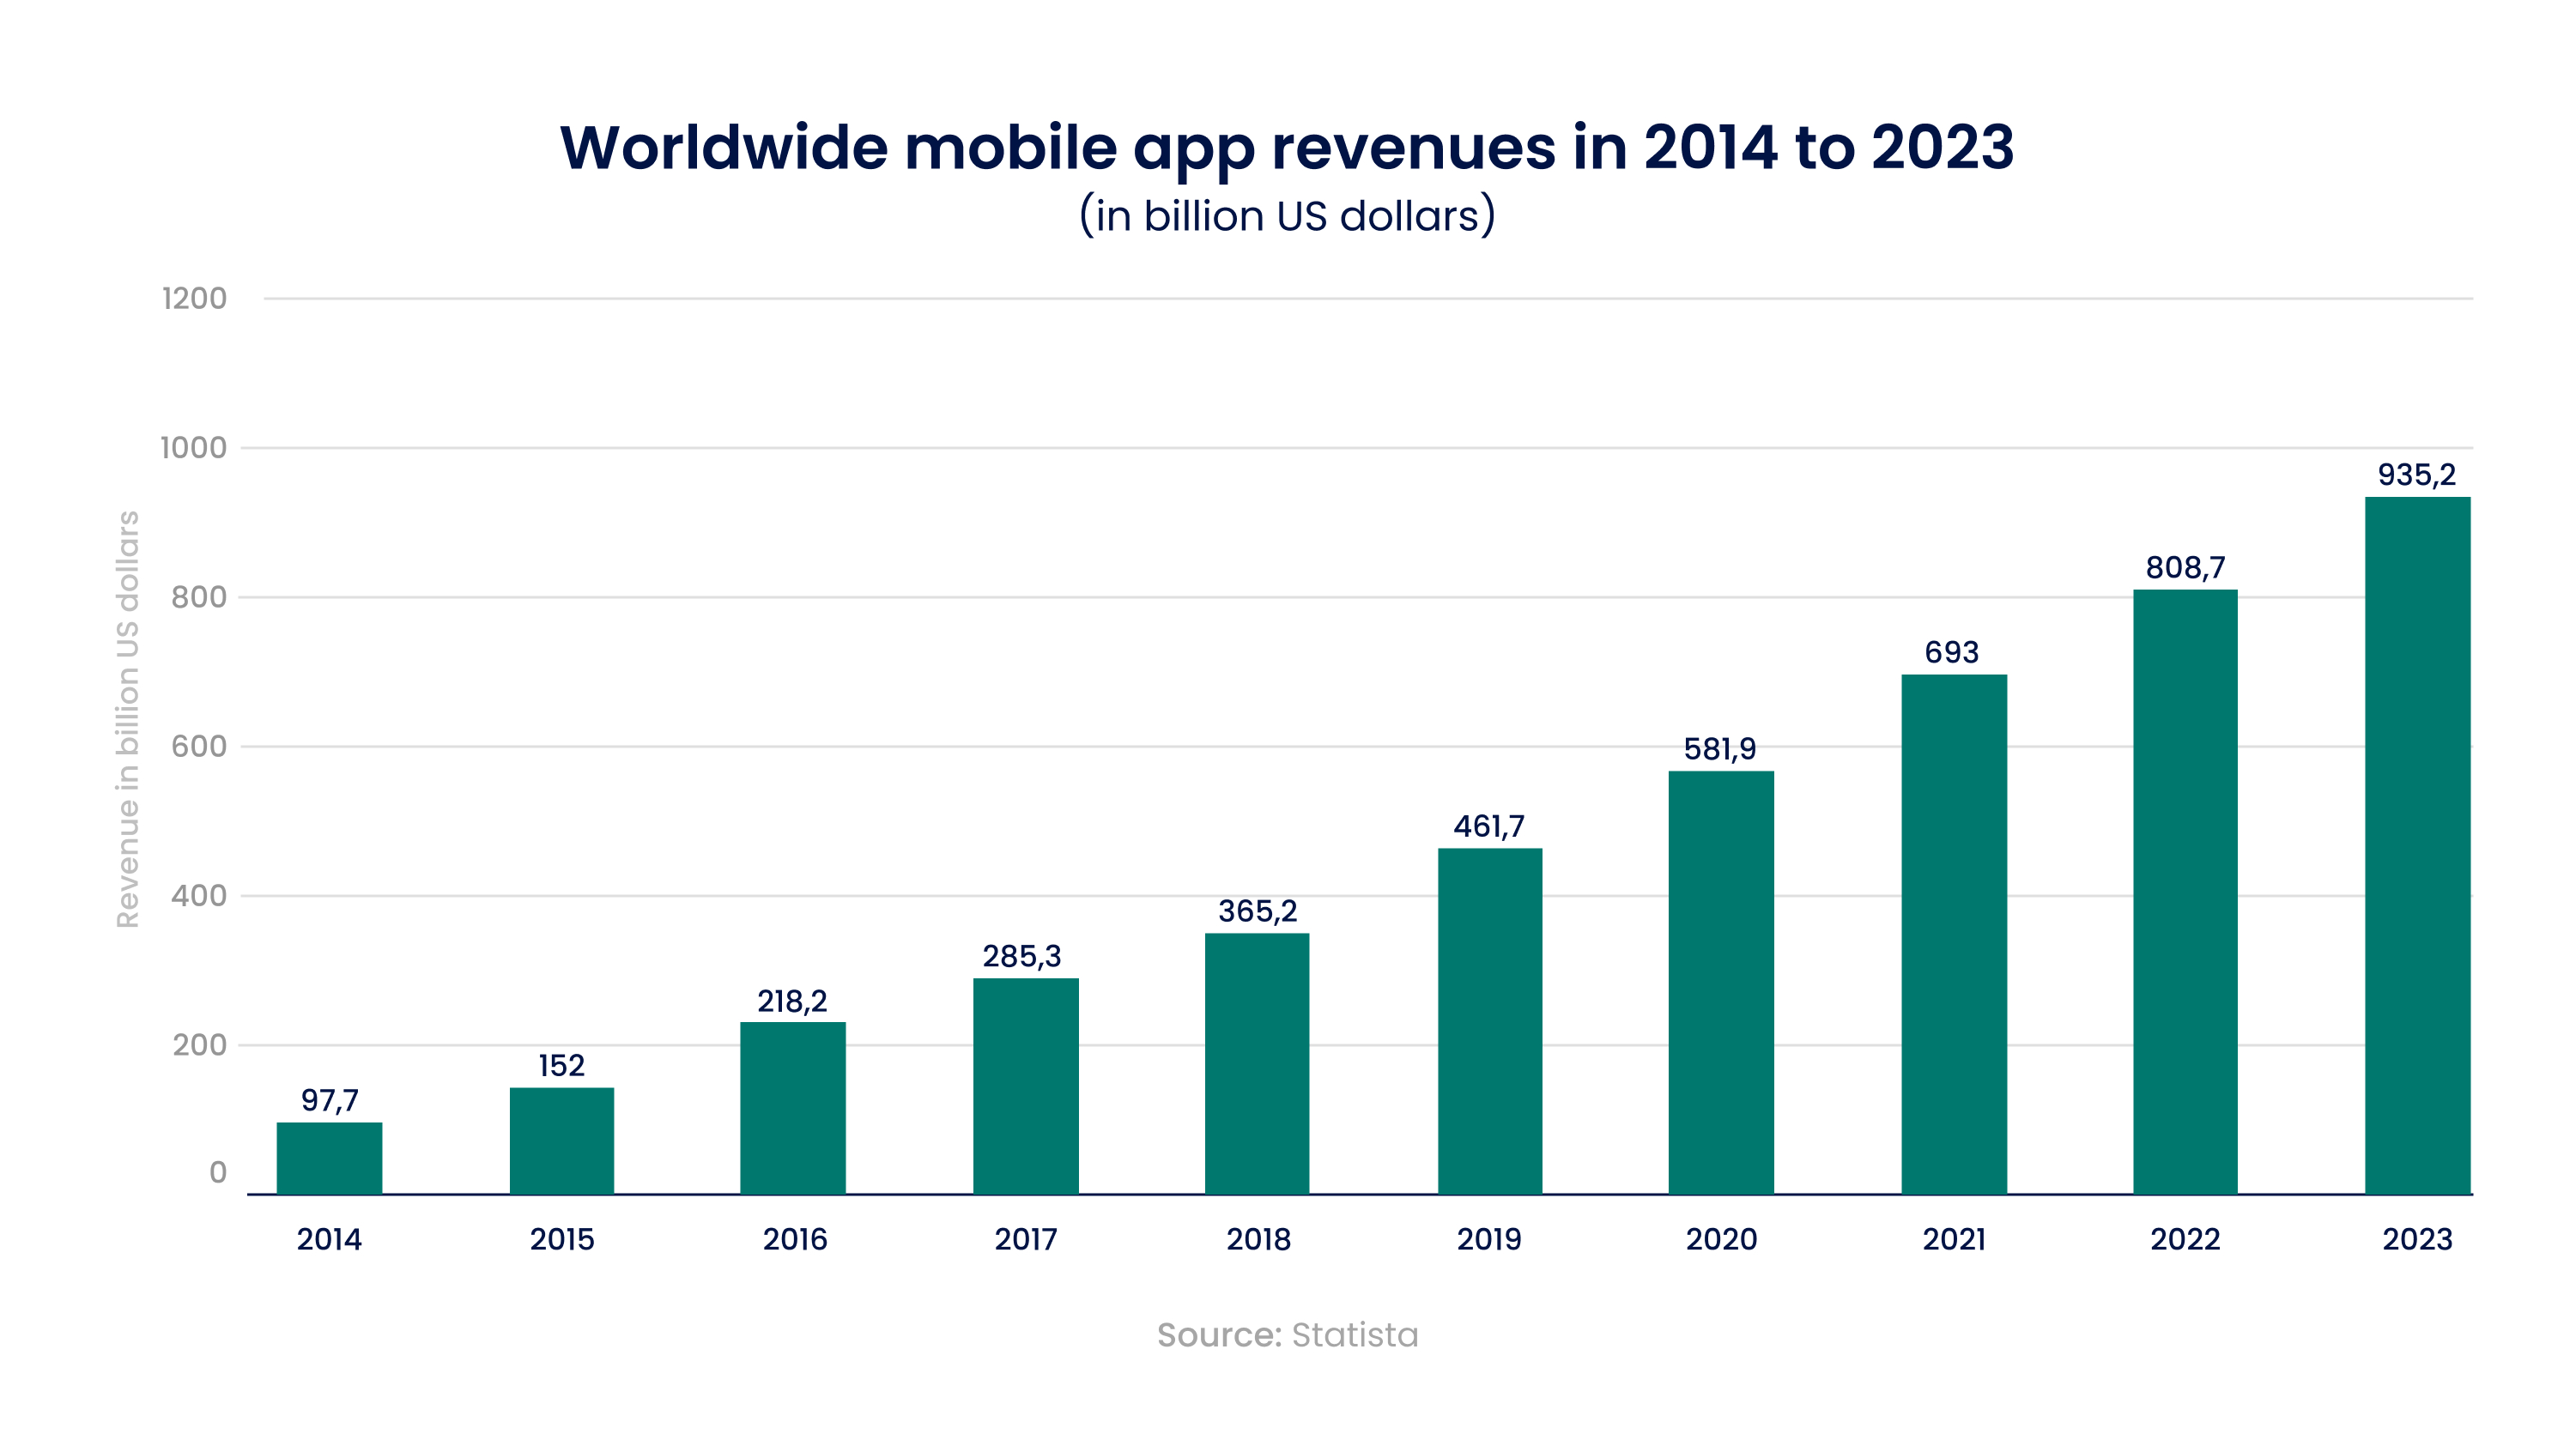 Worldvide mobile app revenues in 2014-2023